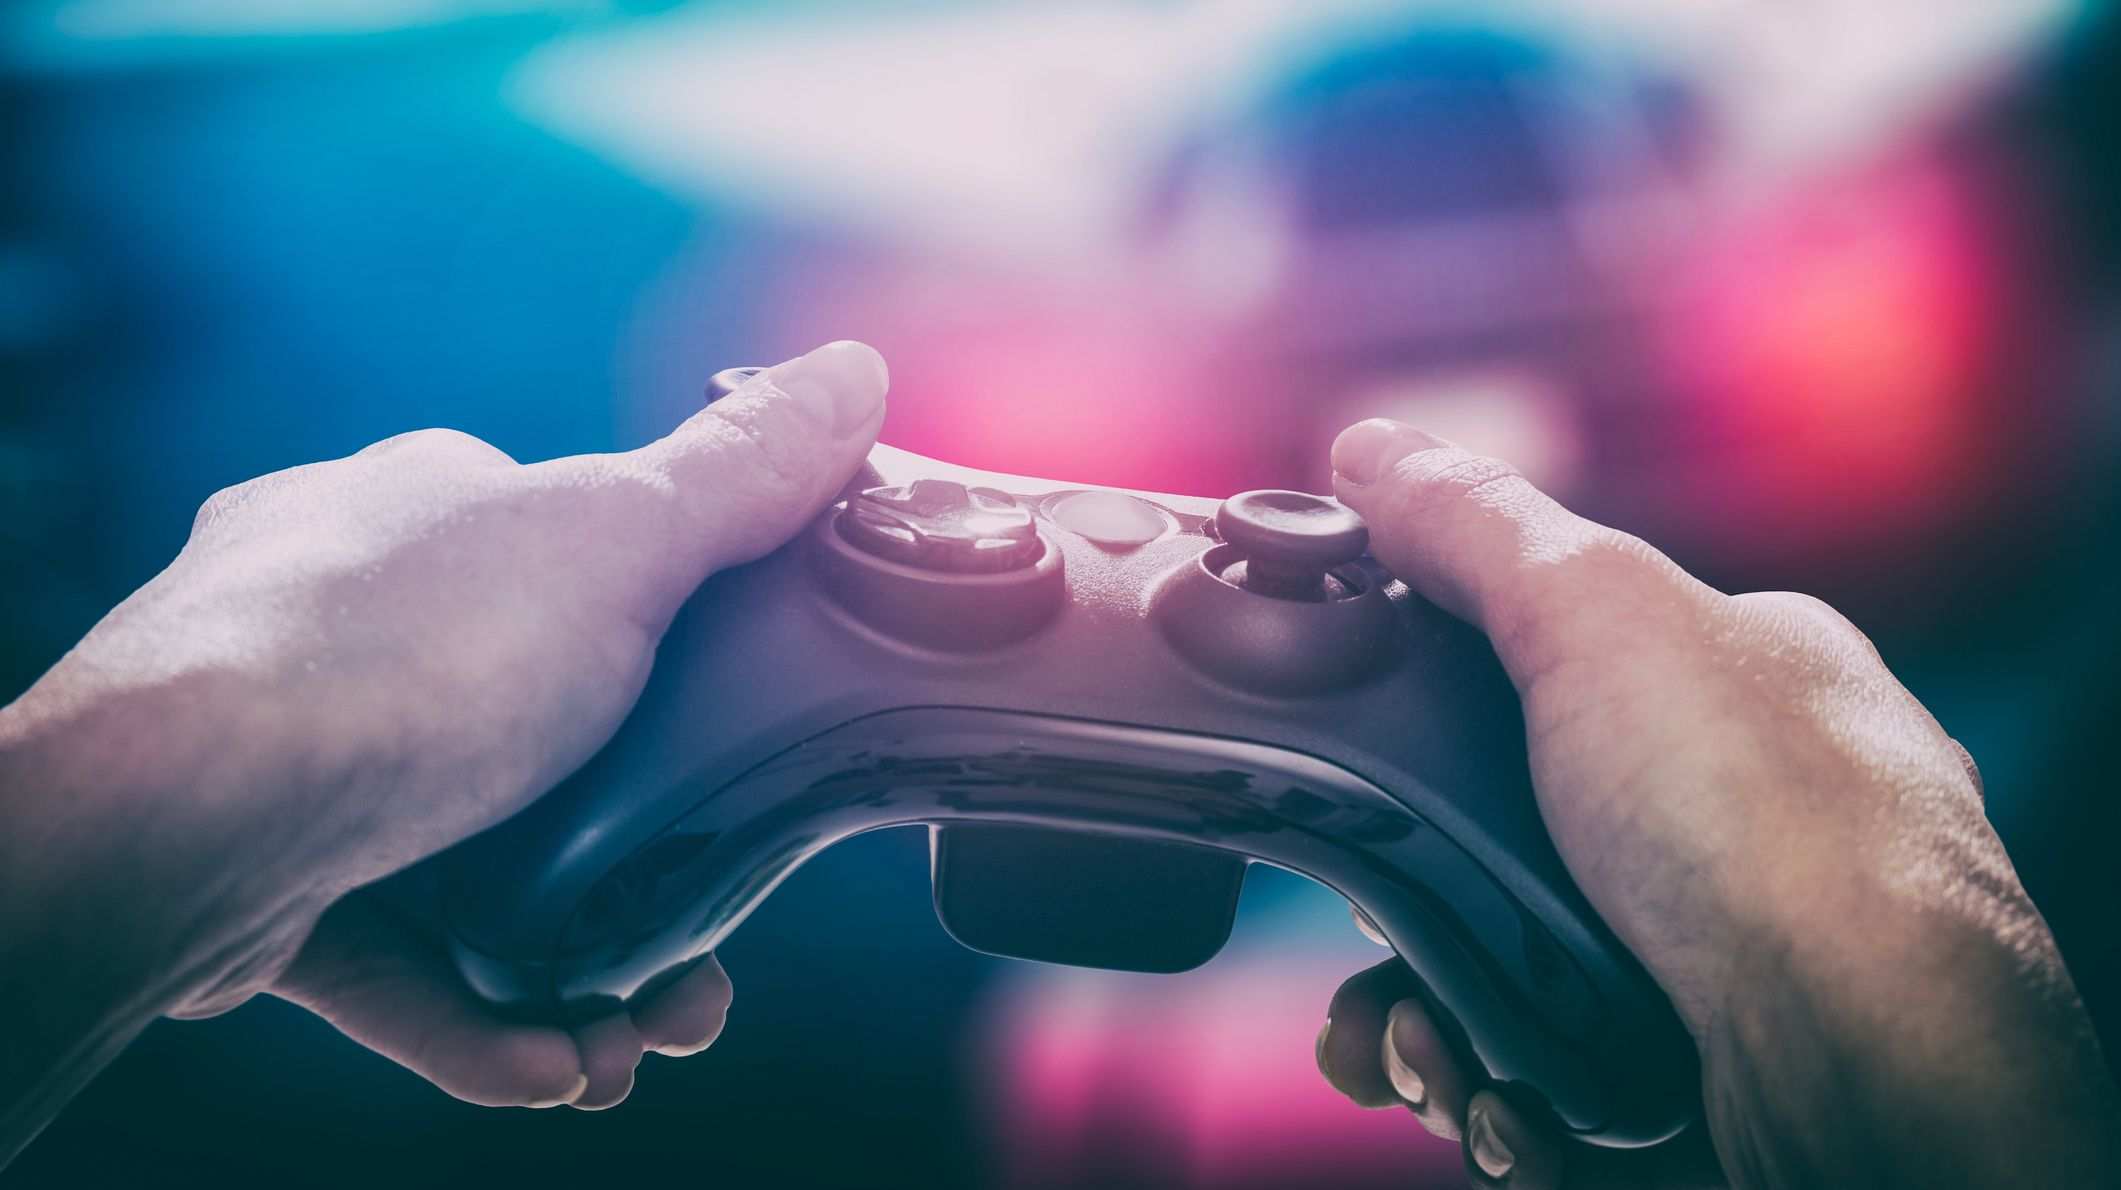 15 Surprising Benefits of Playing Video Games | Mental Floss